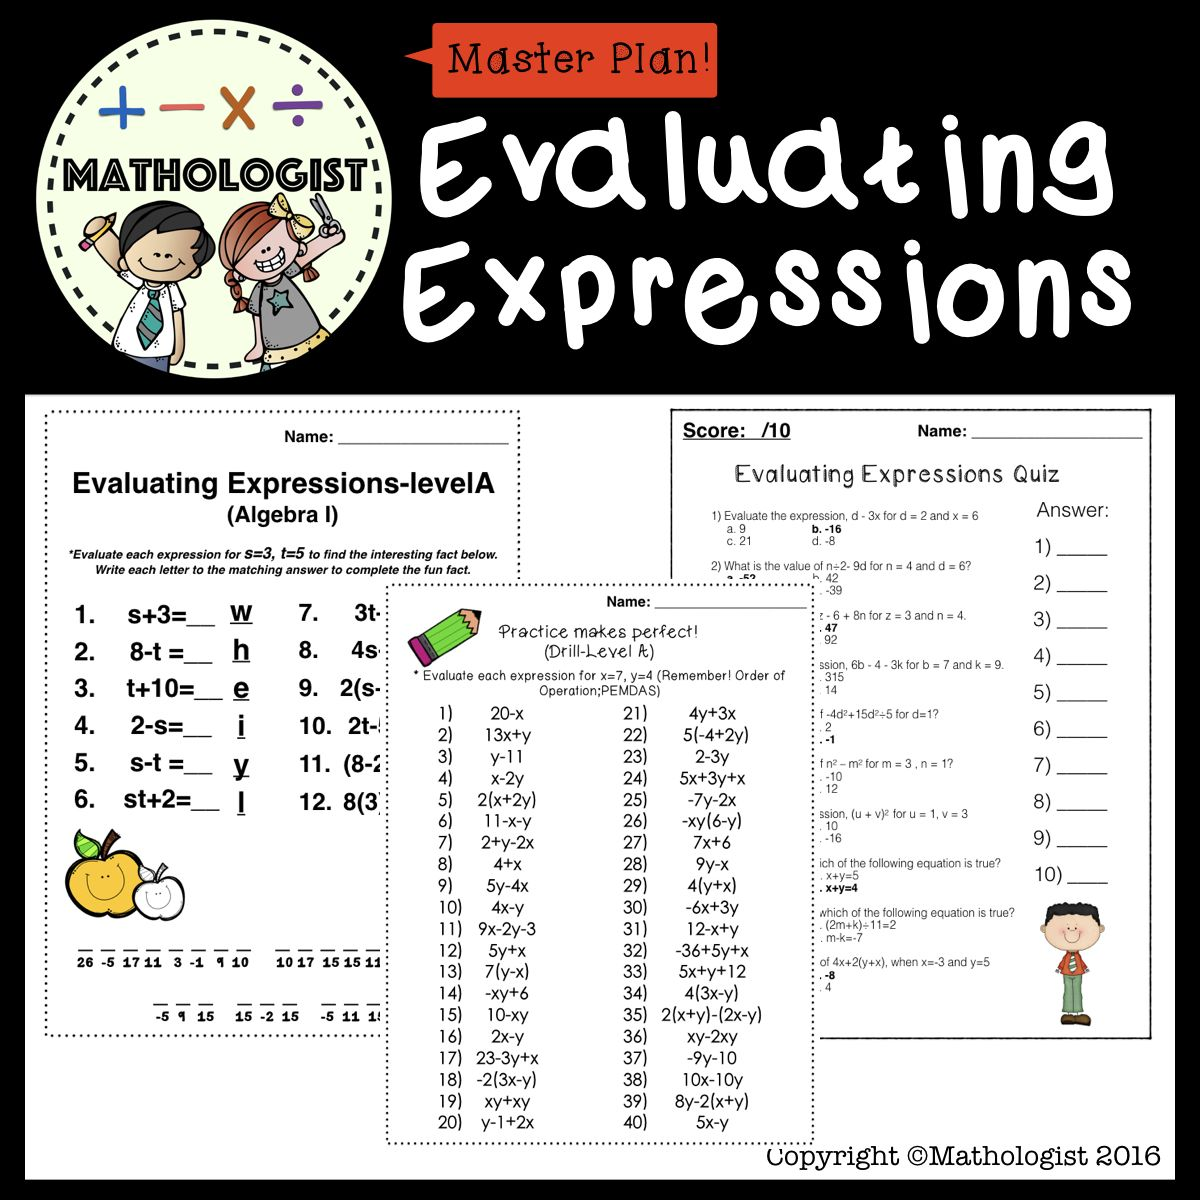 Order of Operations, Evaluating ExpressionsLEVEL A